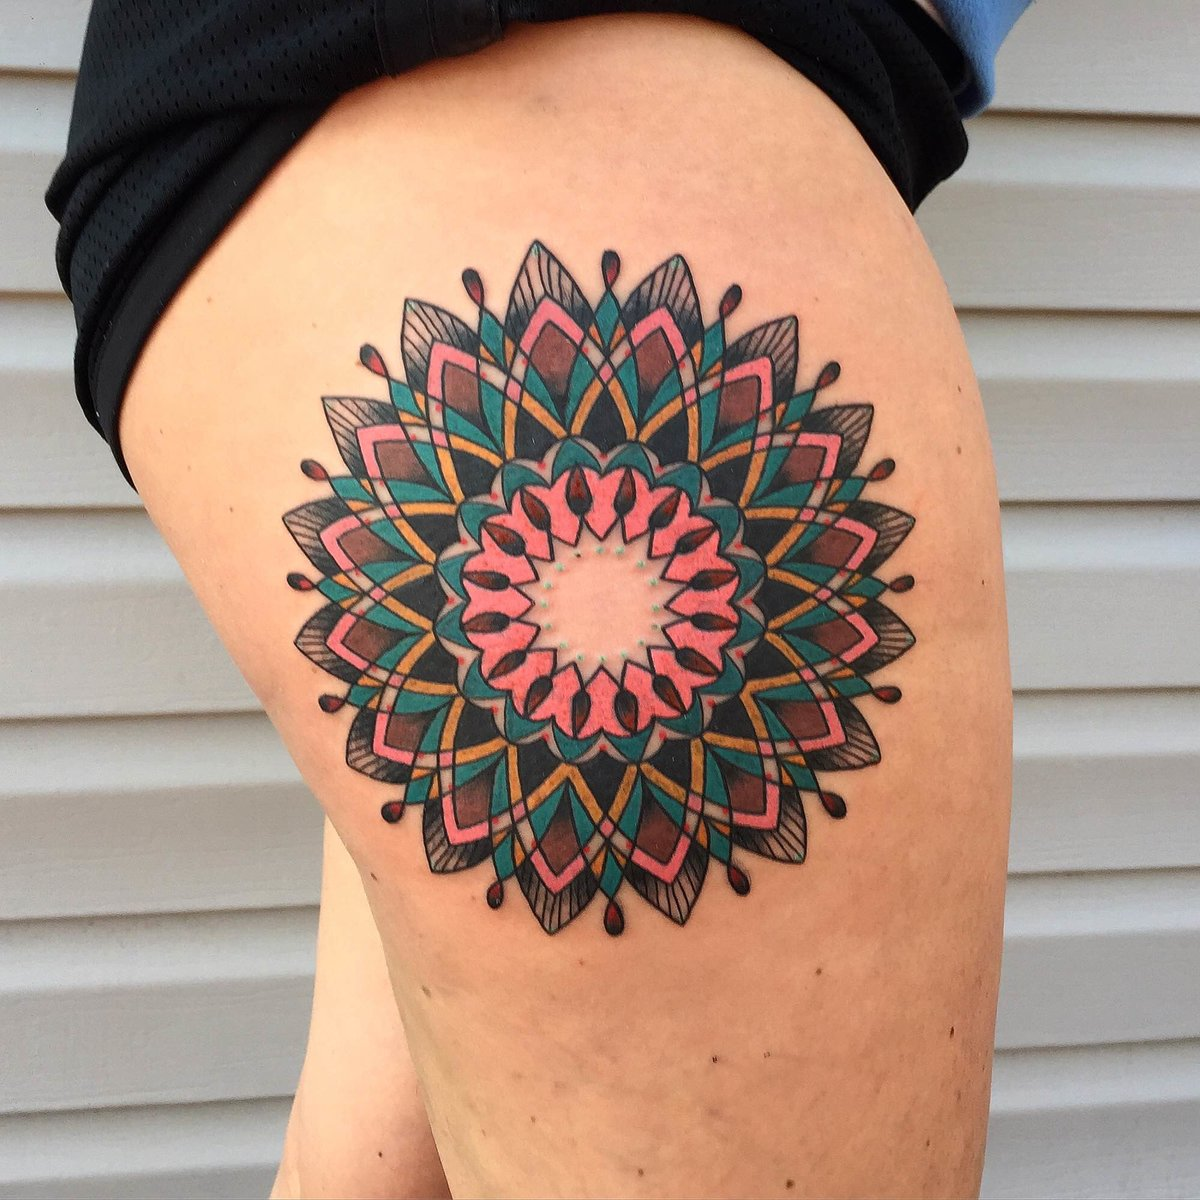 17 Best Images About Ink On Pinterest: «Shawn Dougherty Tattoo Artist In Wilmington Nc. 17 Best